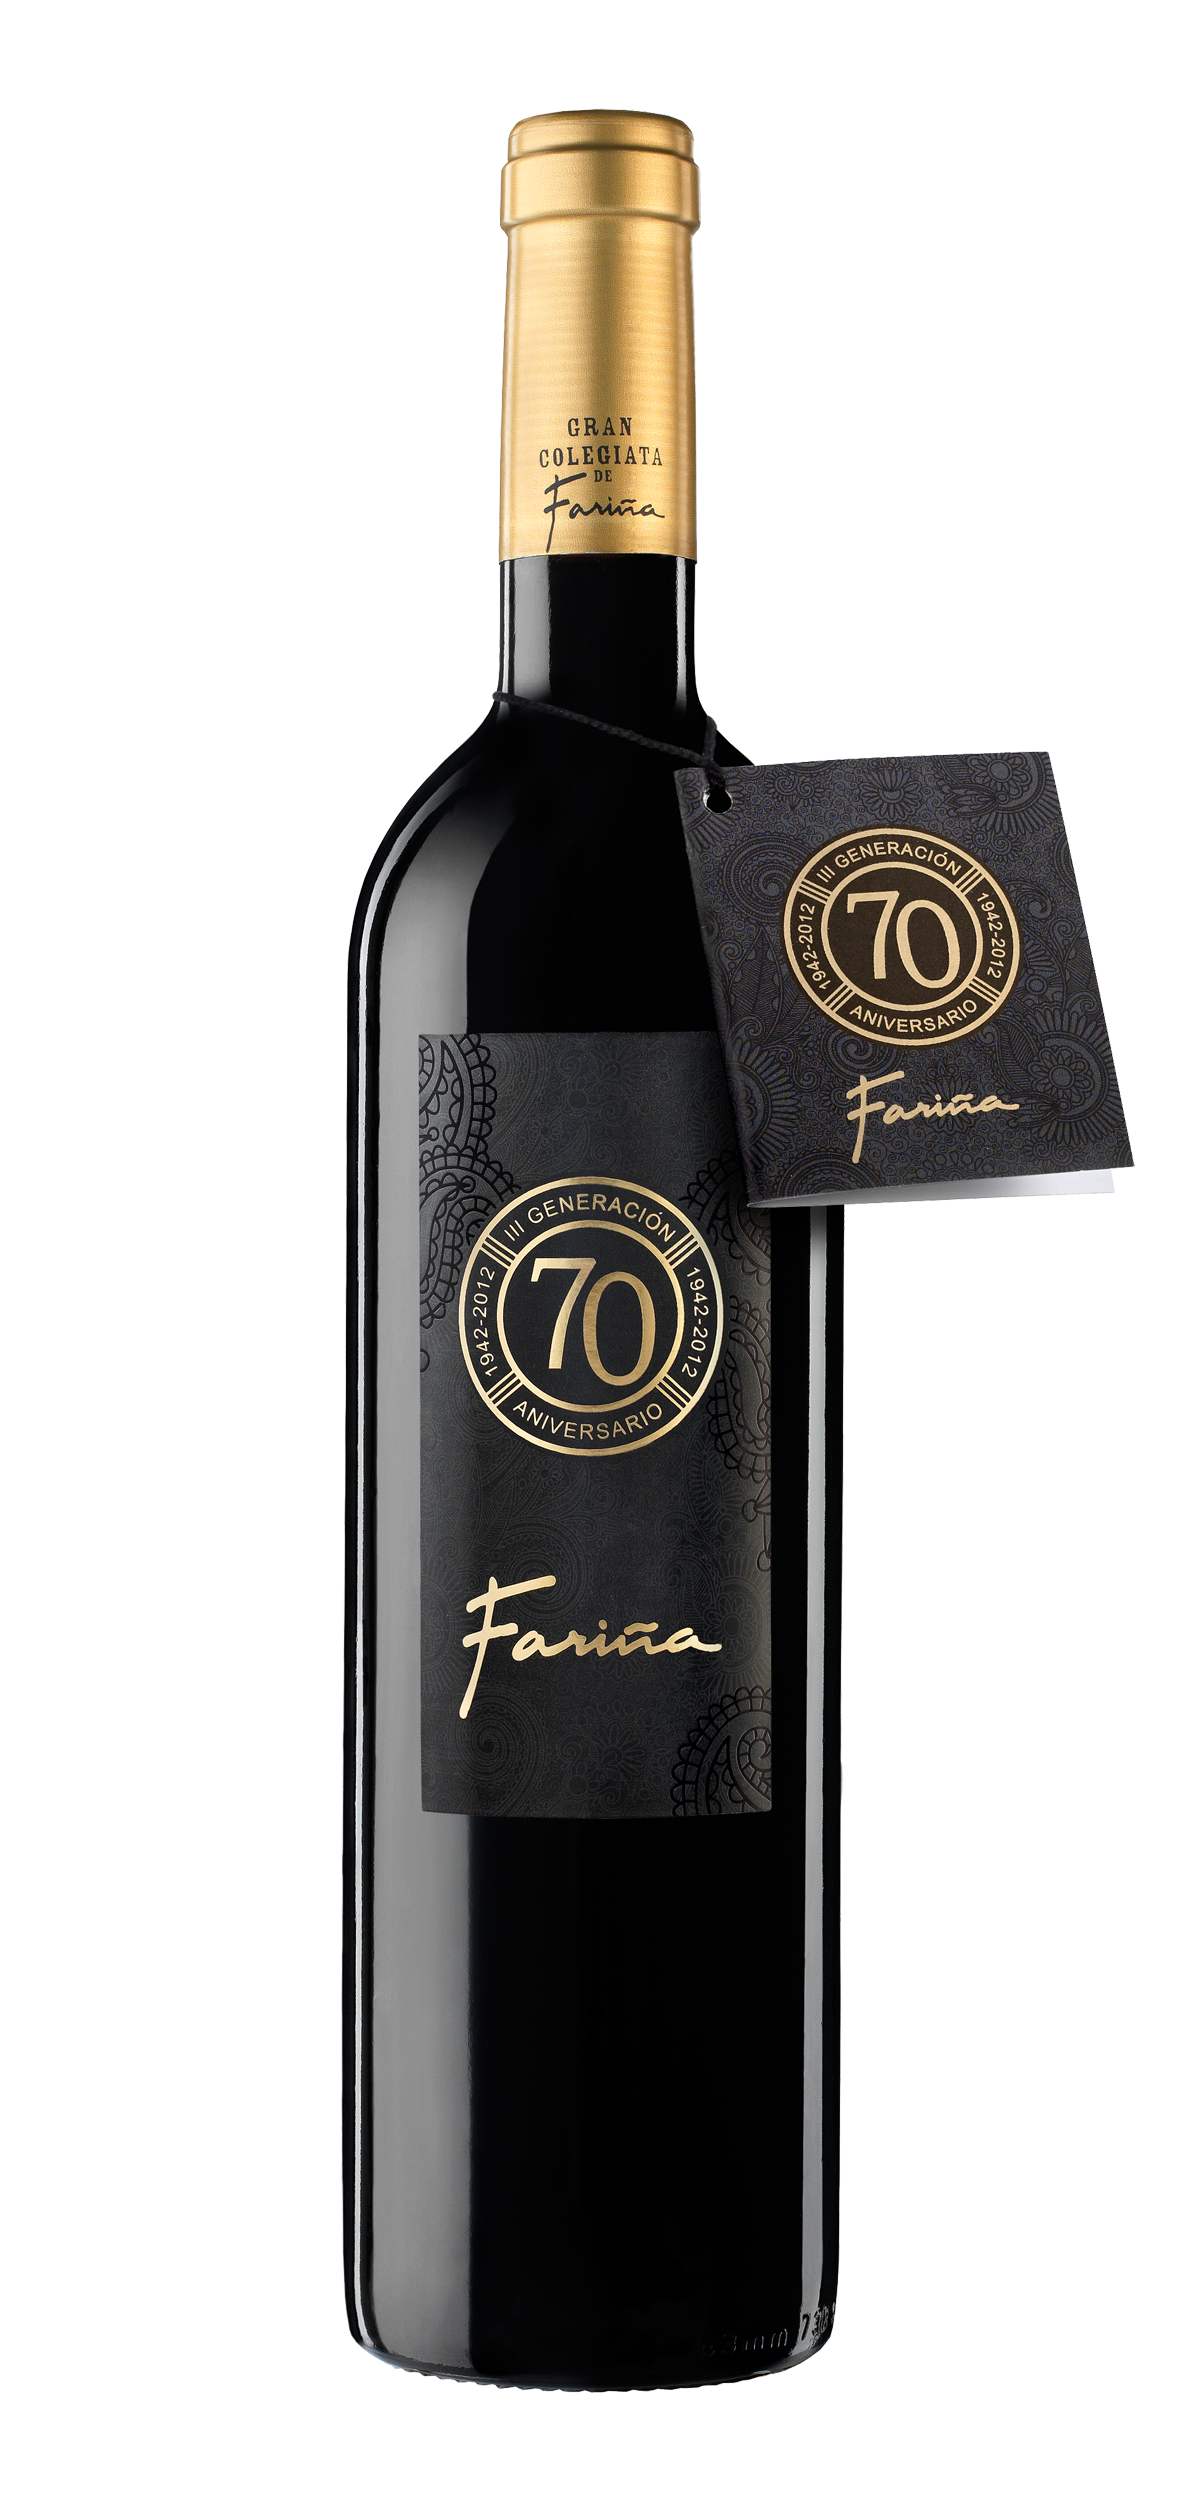 Farina 70 Aniversario wine bottle design